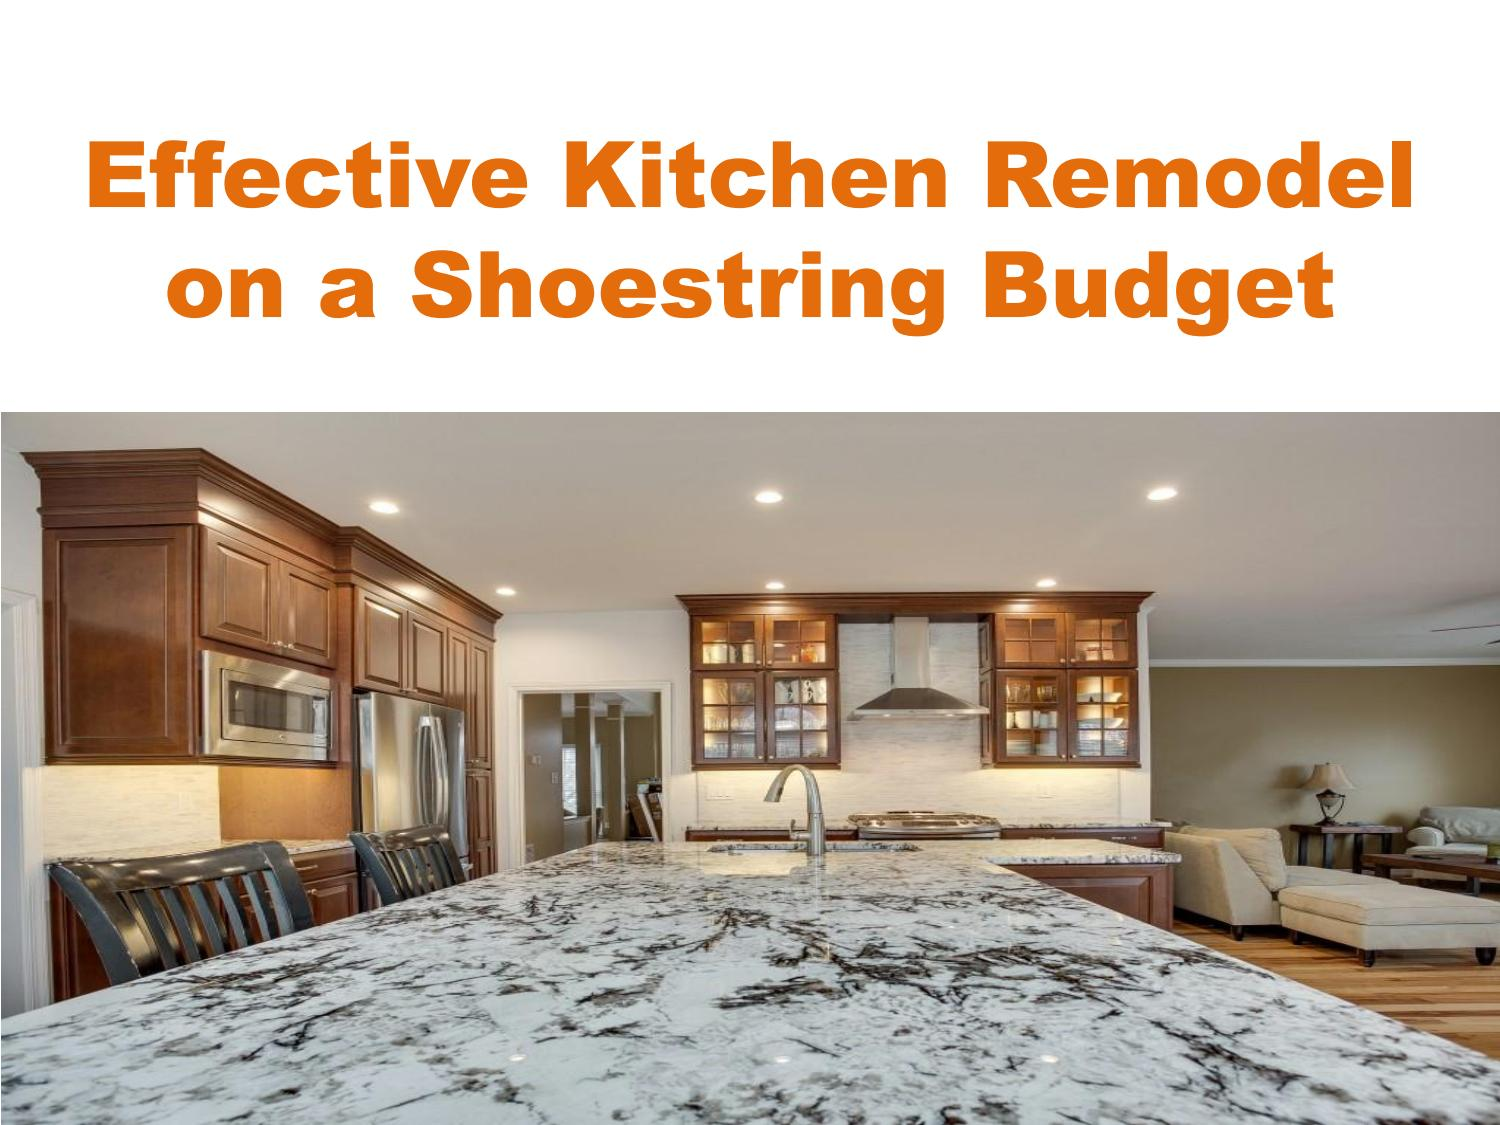 Effective Kitchen Remodel On A Shoestring Budget By Maria Wilson